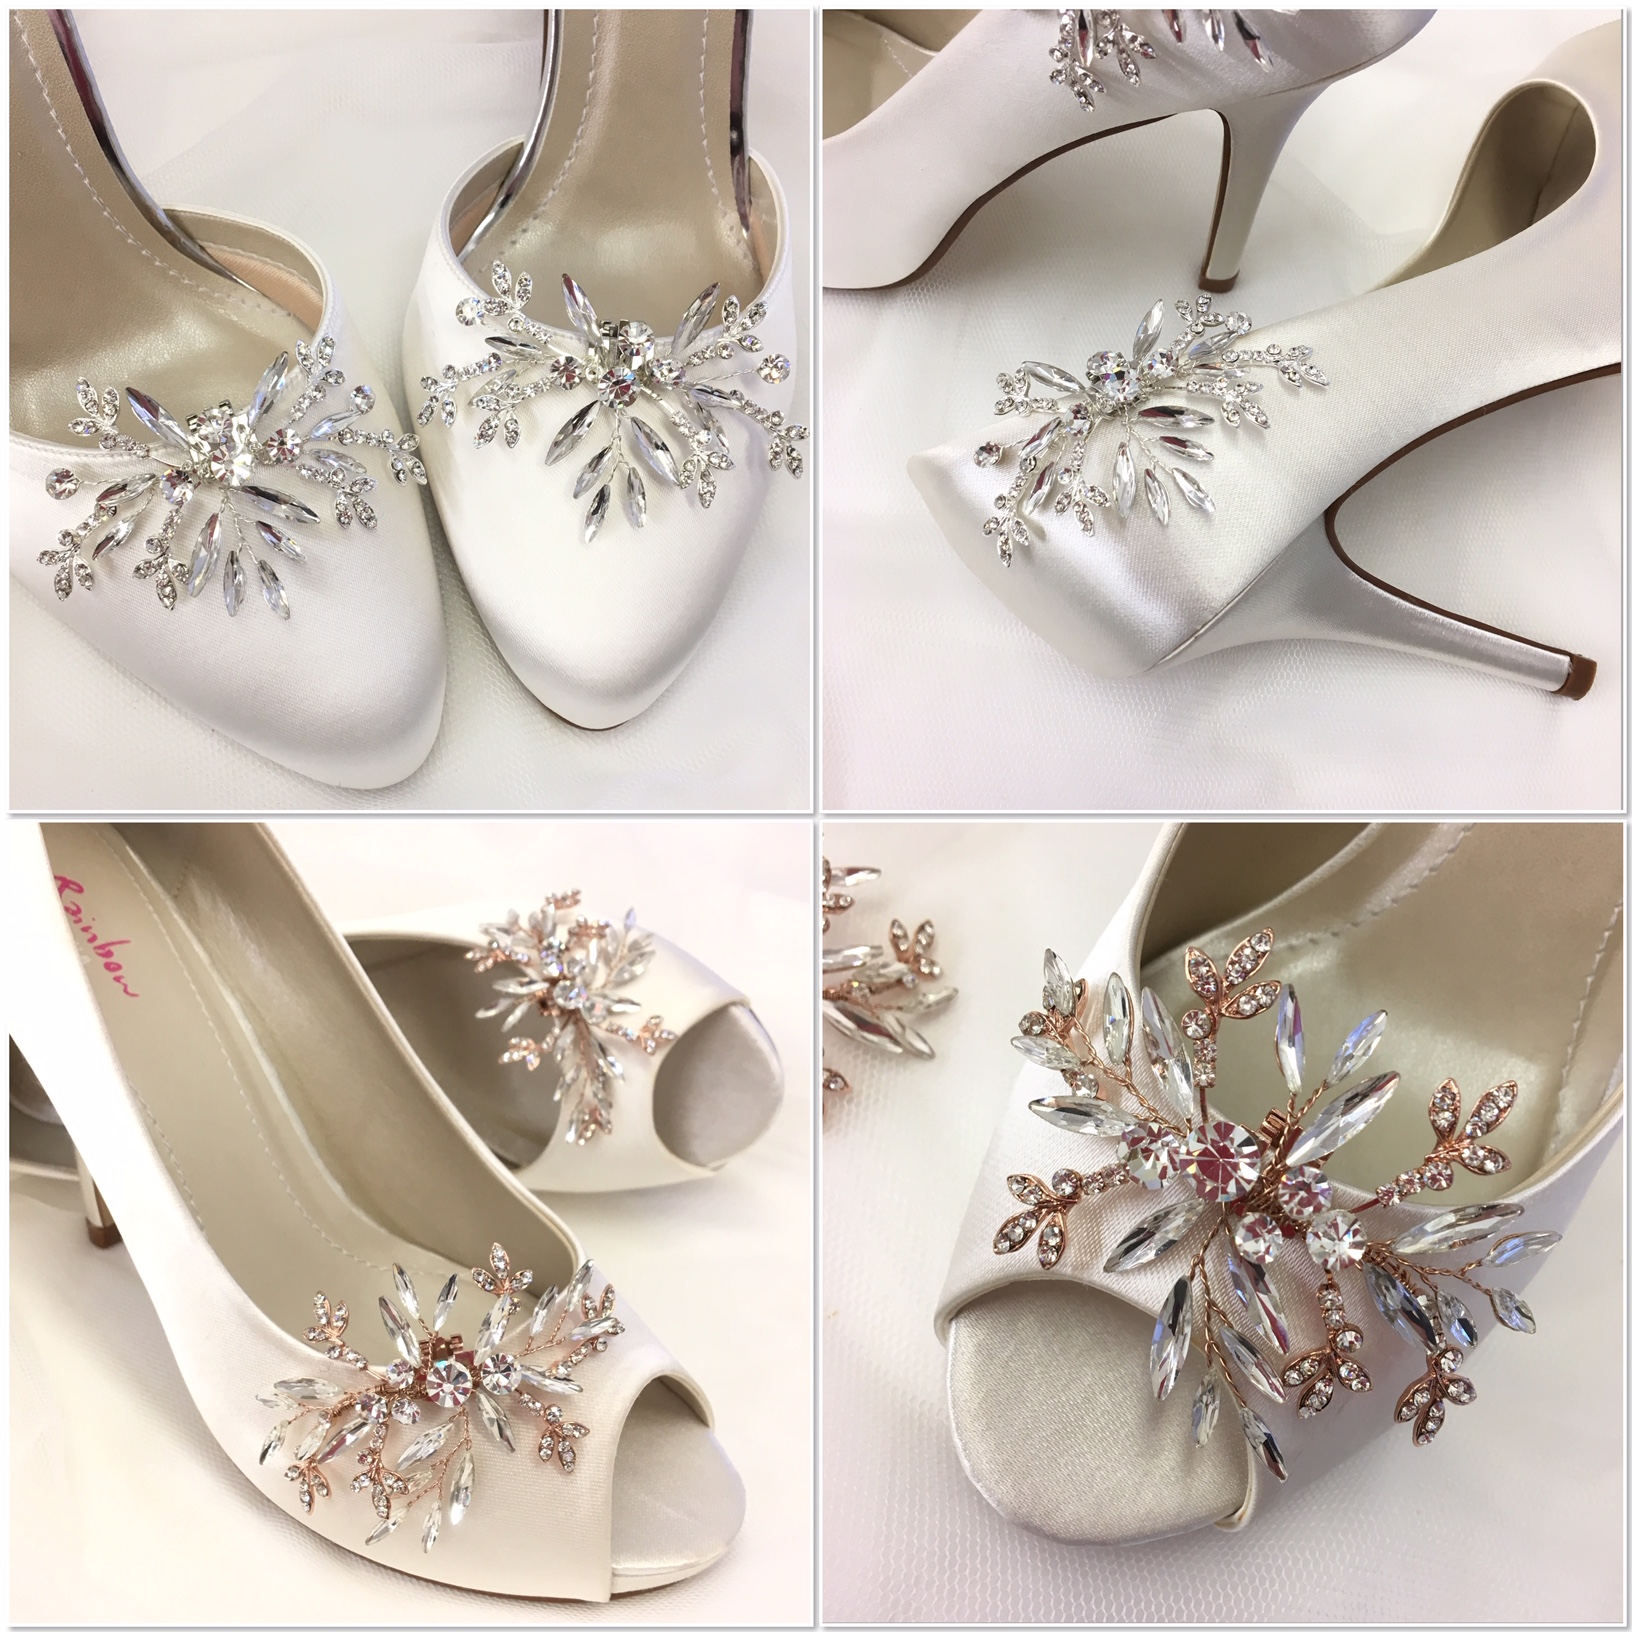 Silver and rose gold shoe clips